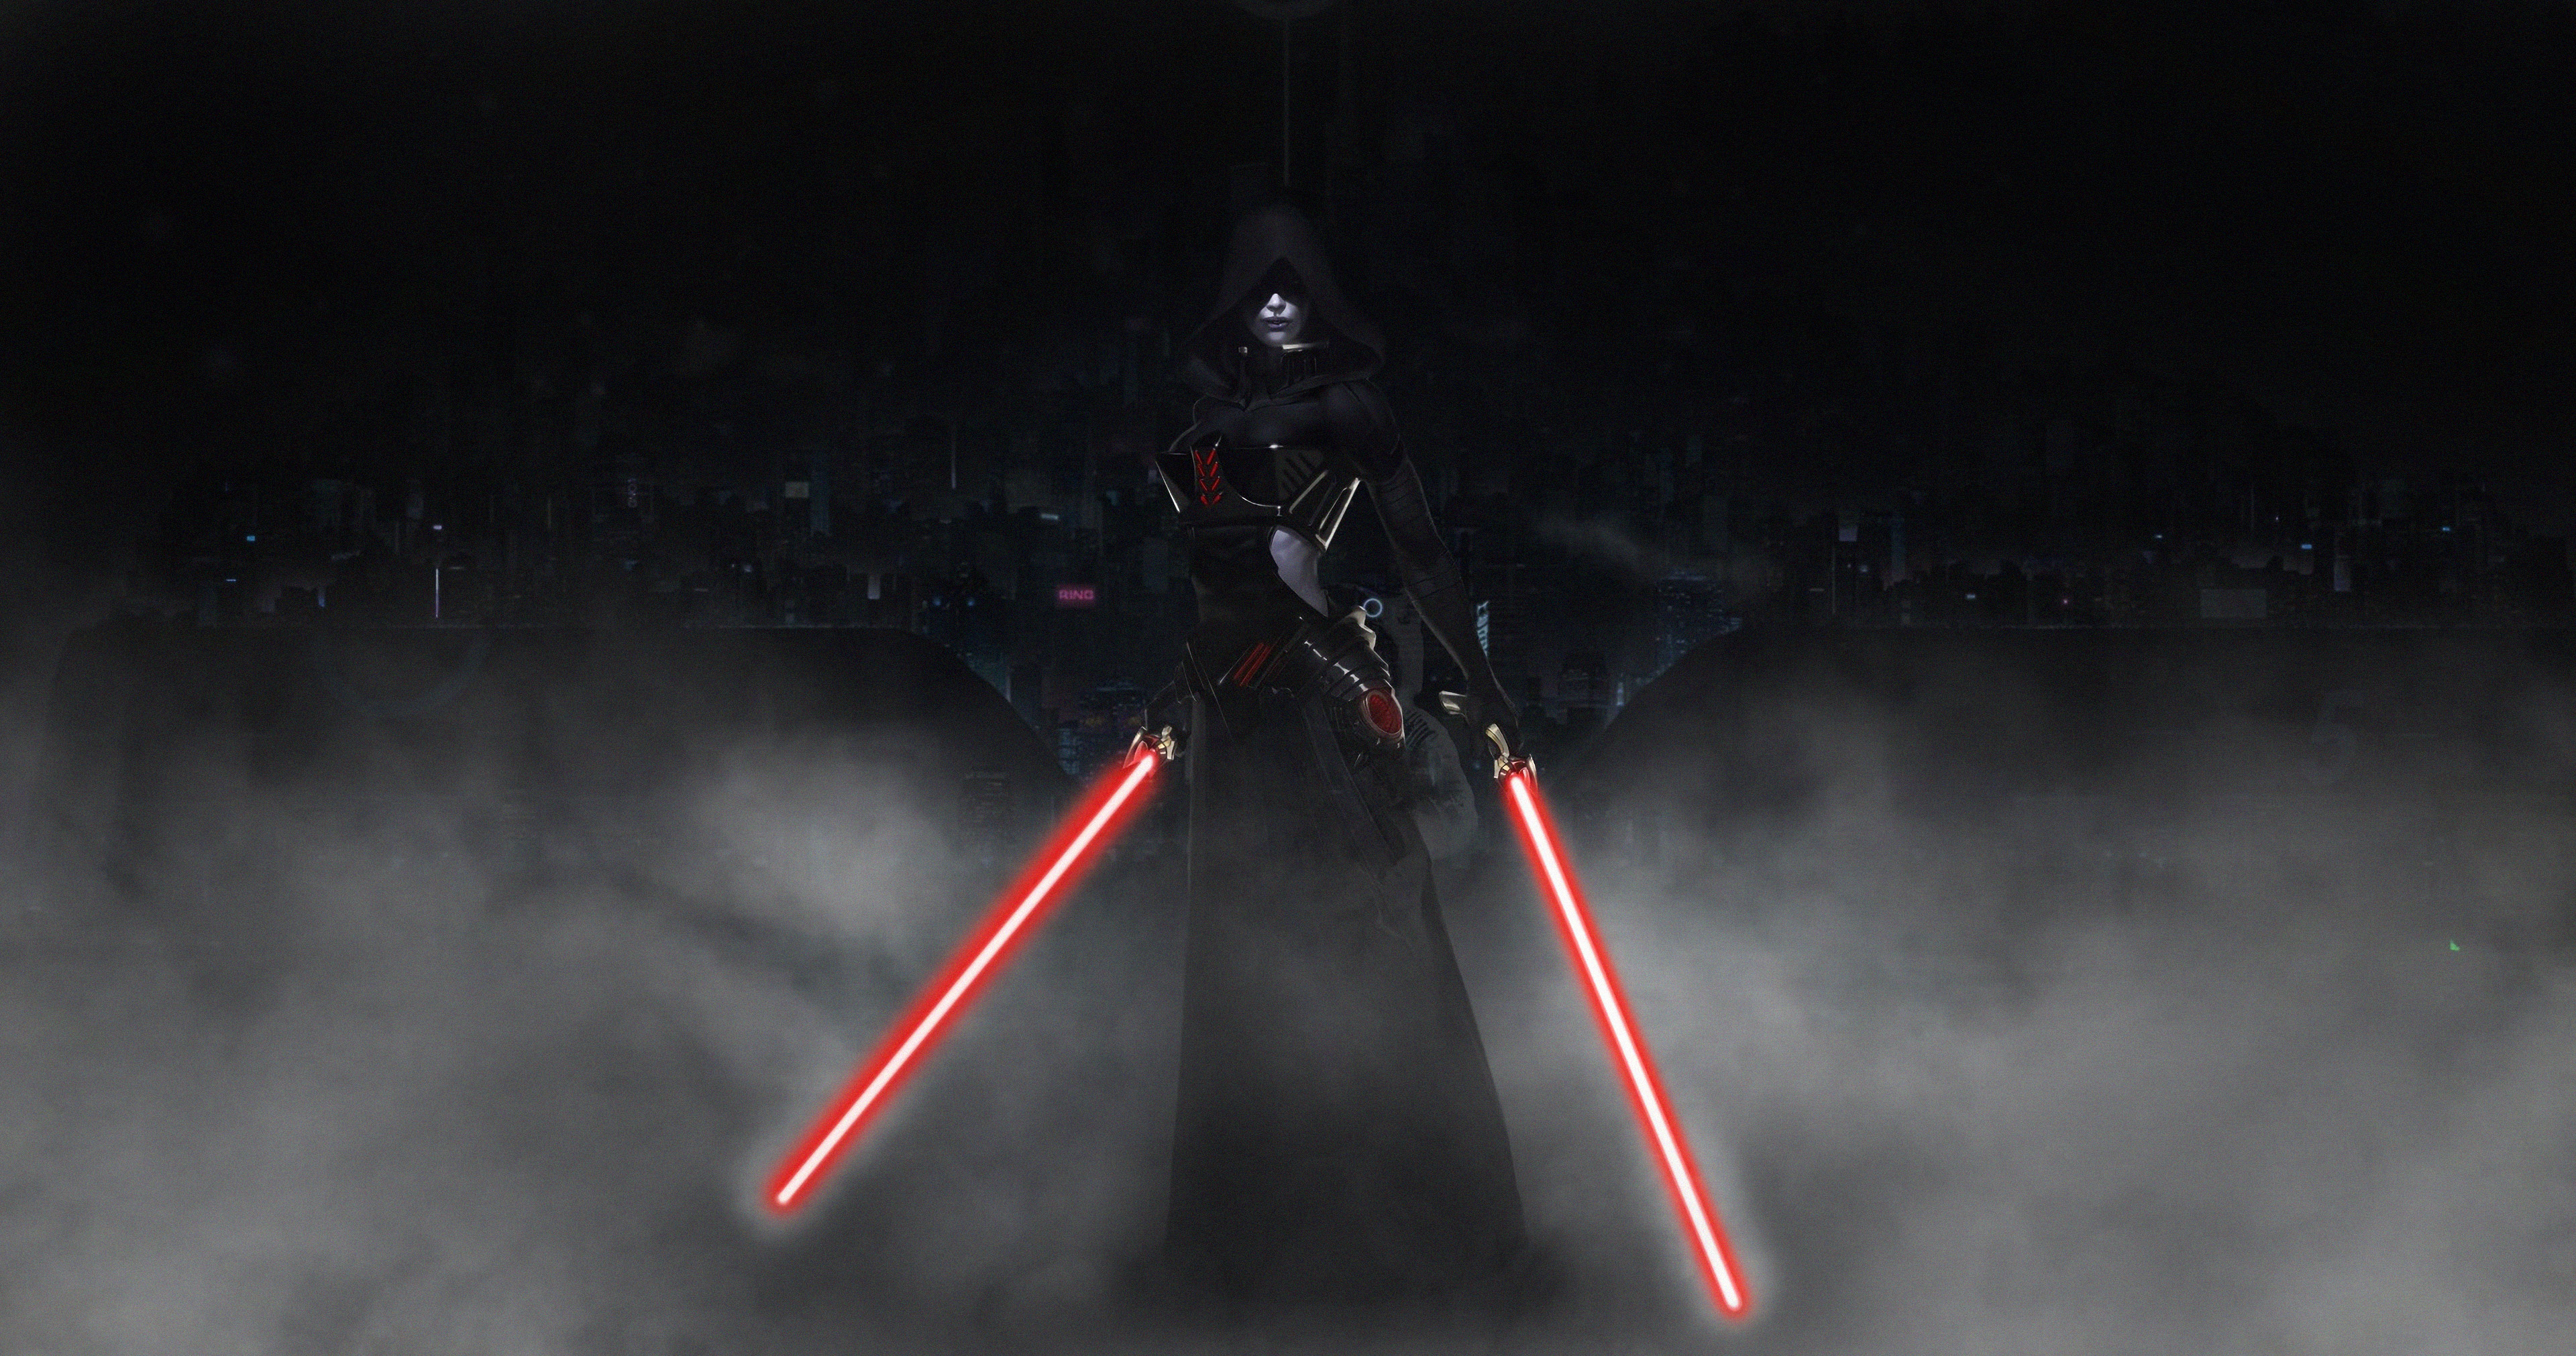 Sith With Lightsaber Wallpaper Hd Artist 4k Wallpapers